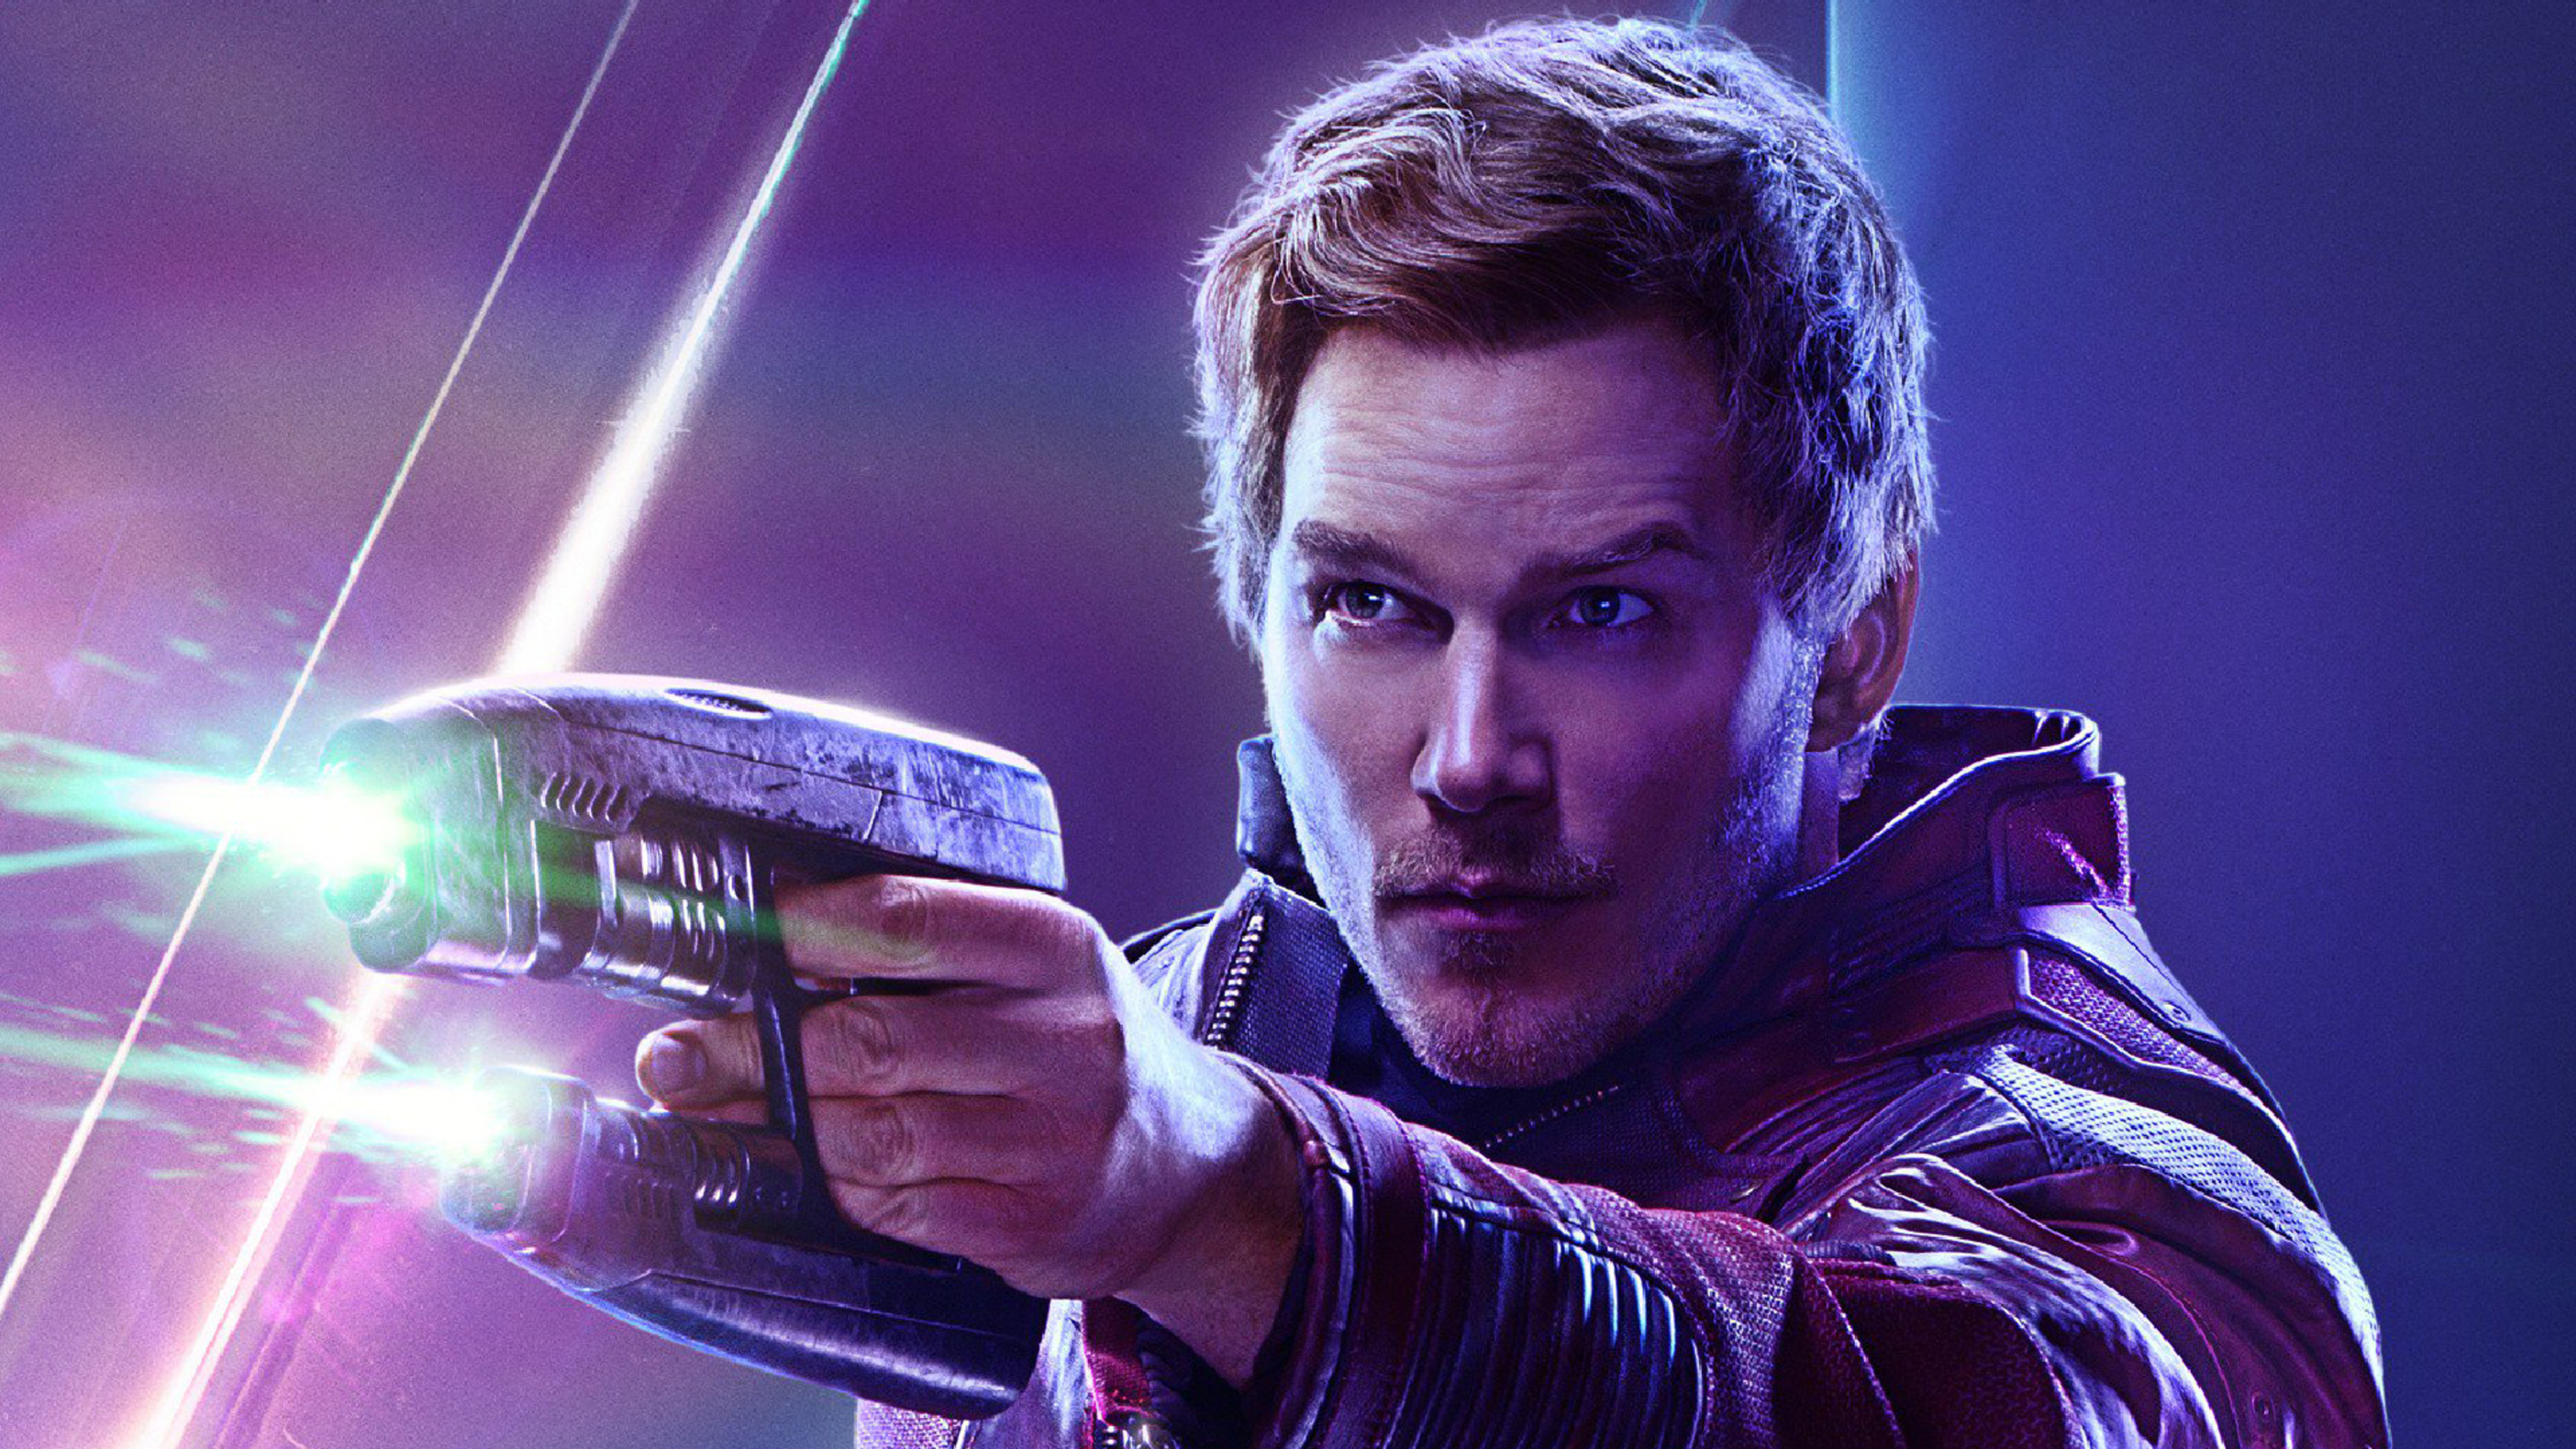 star-lord-in-avengers-infinity-war-new-poster-nx.jpg